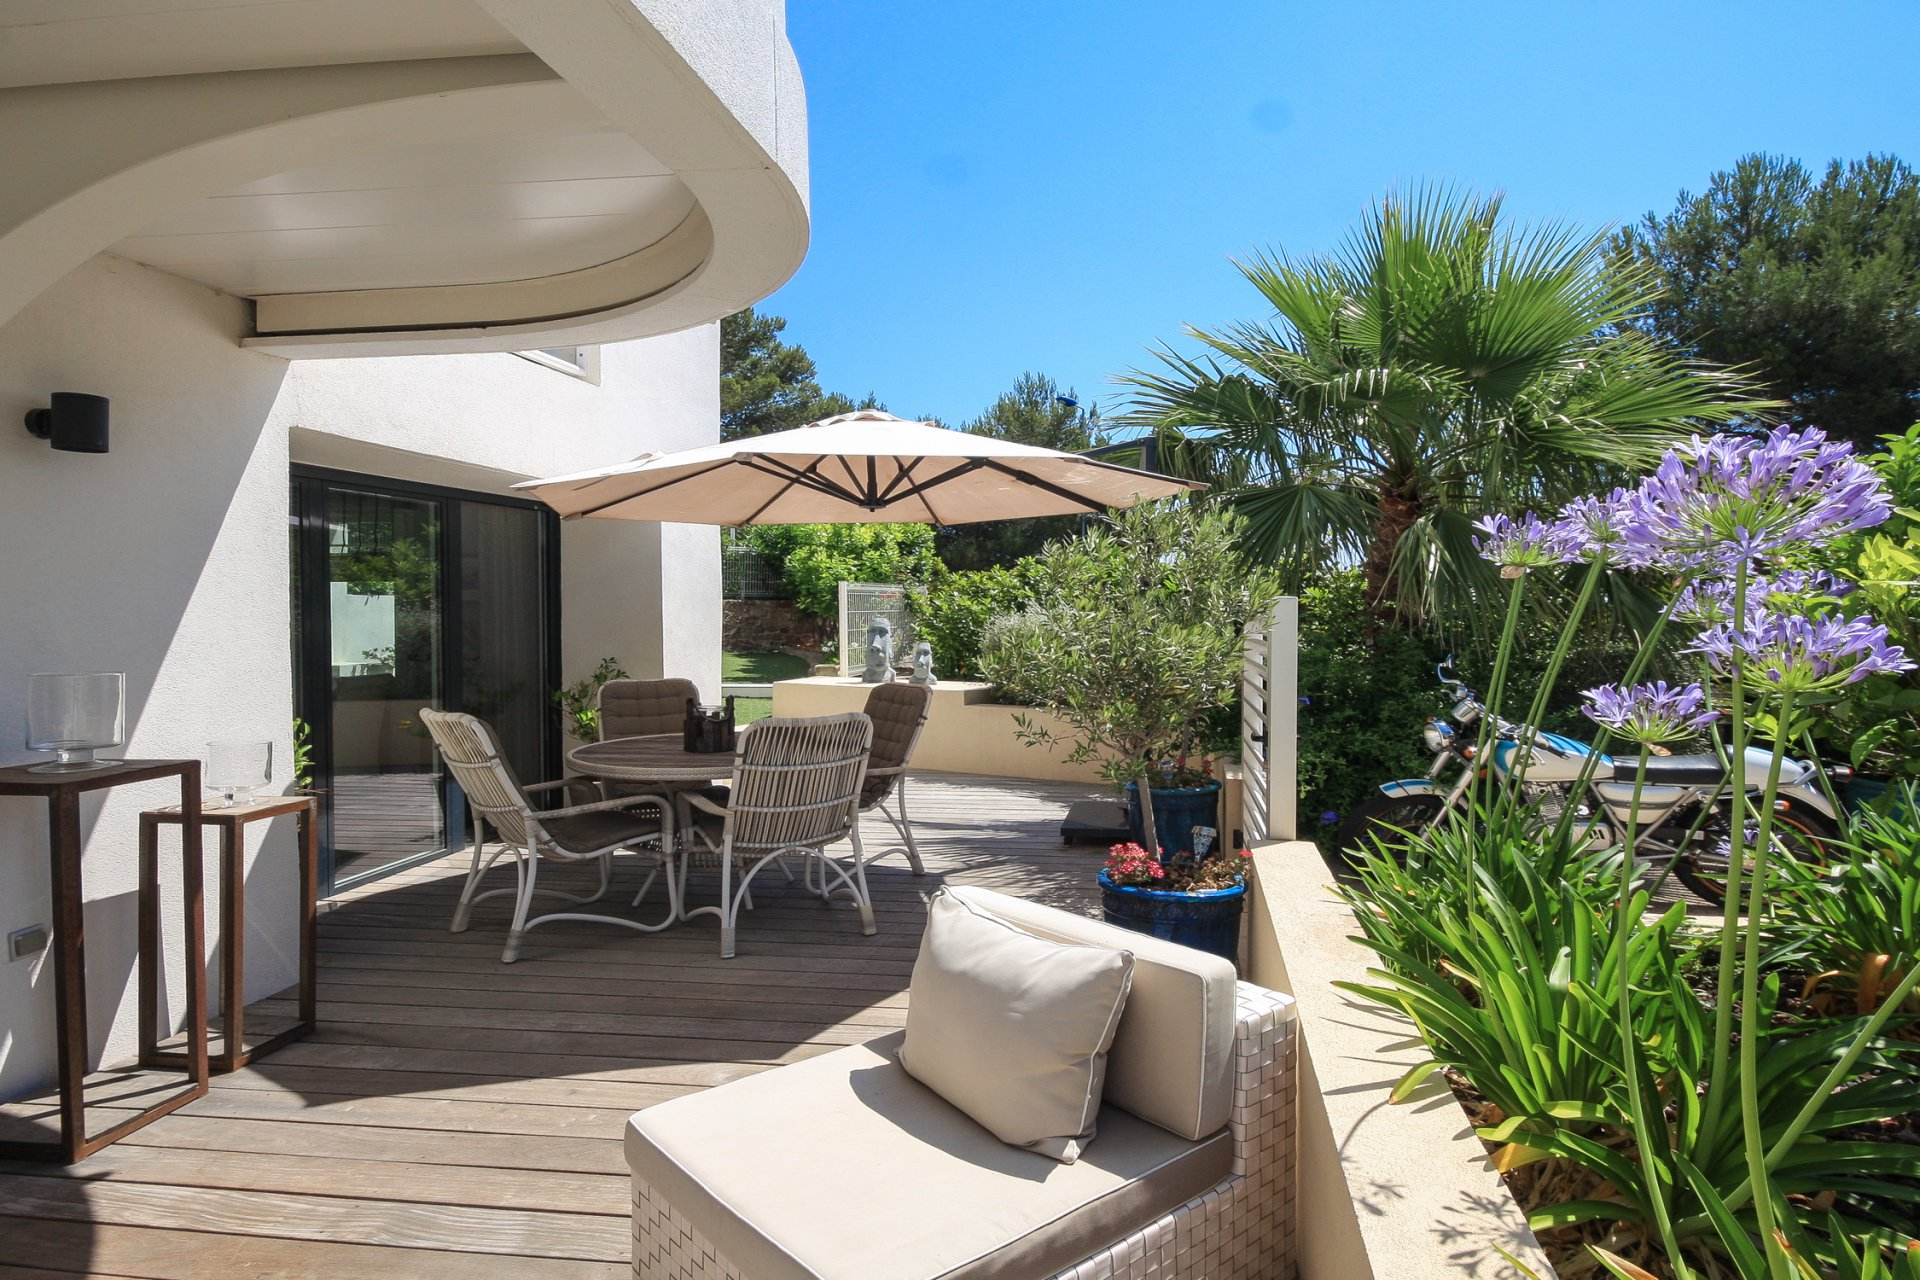 LUXURY 2 ROOMS FLAT CLOSE TO THE SEA